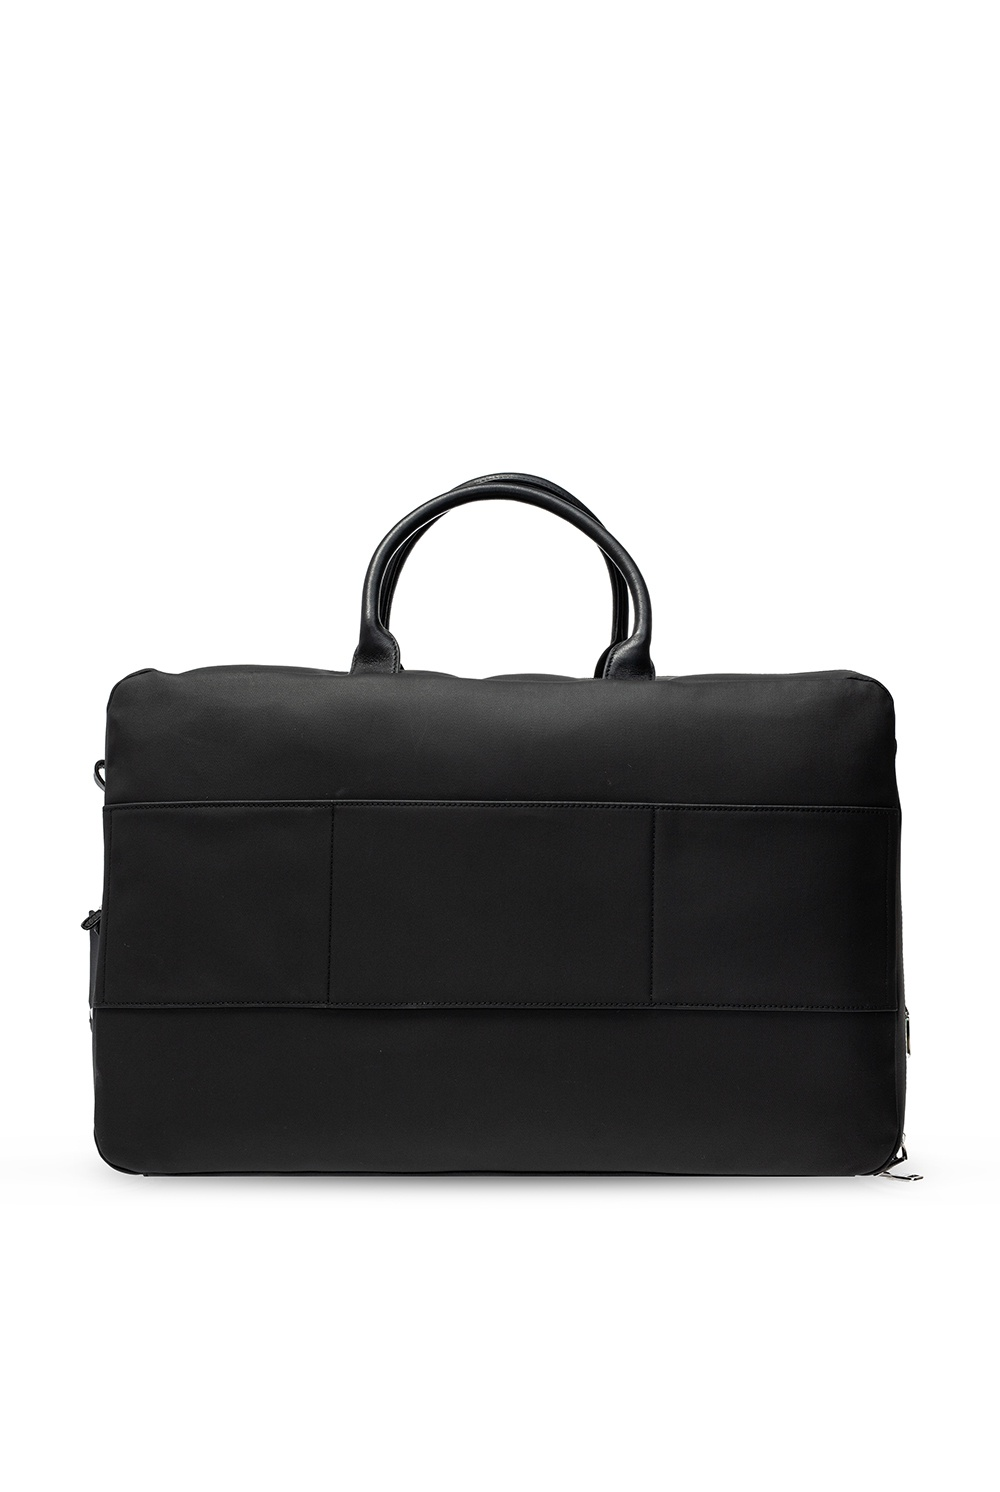 Bally 'Verger' weekender